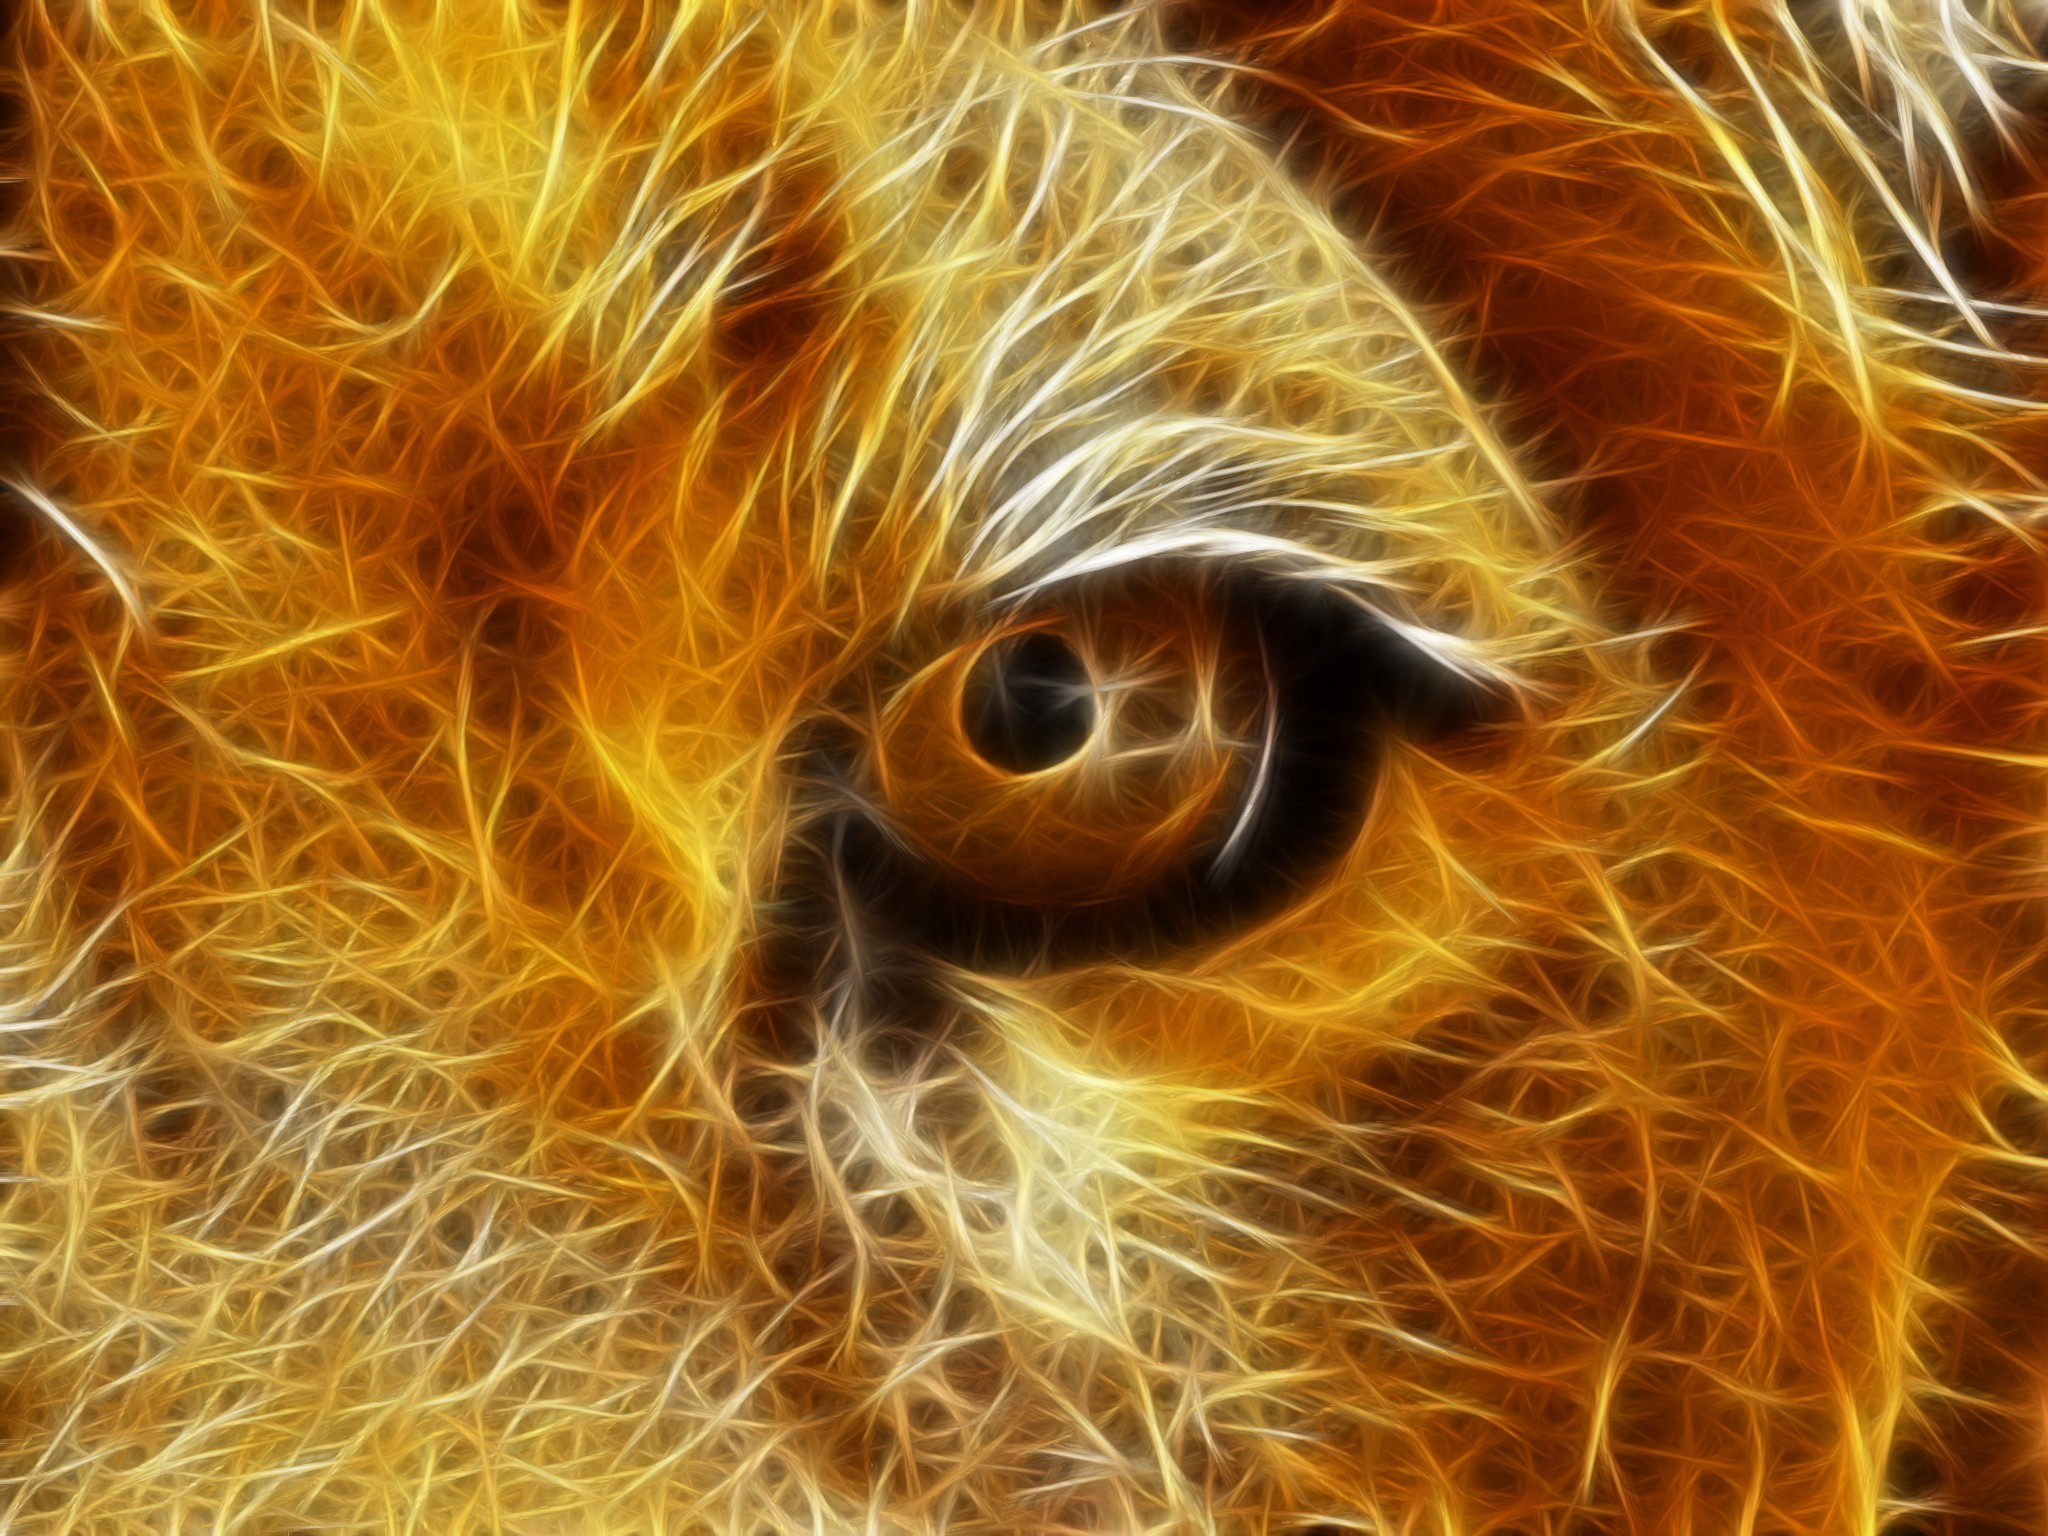 Angry Lion Eyes Wallpaper (60+ images)